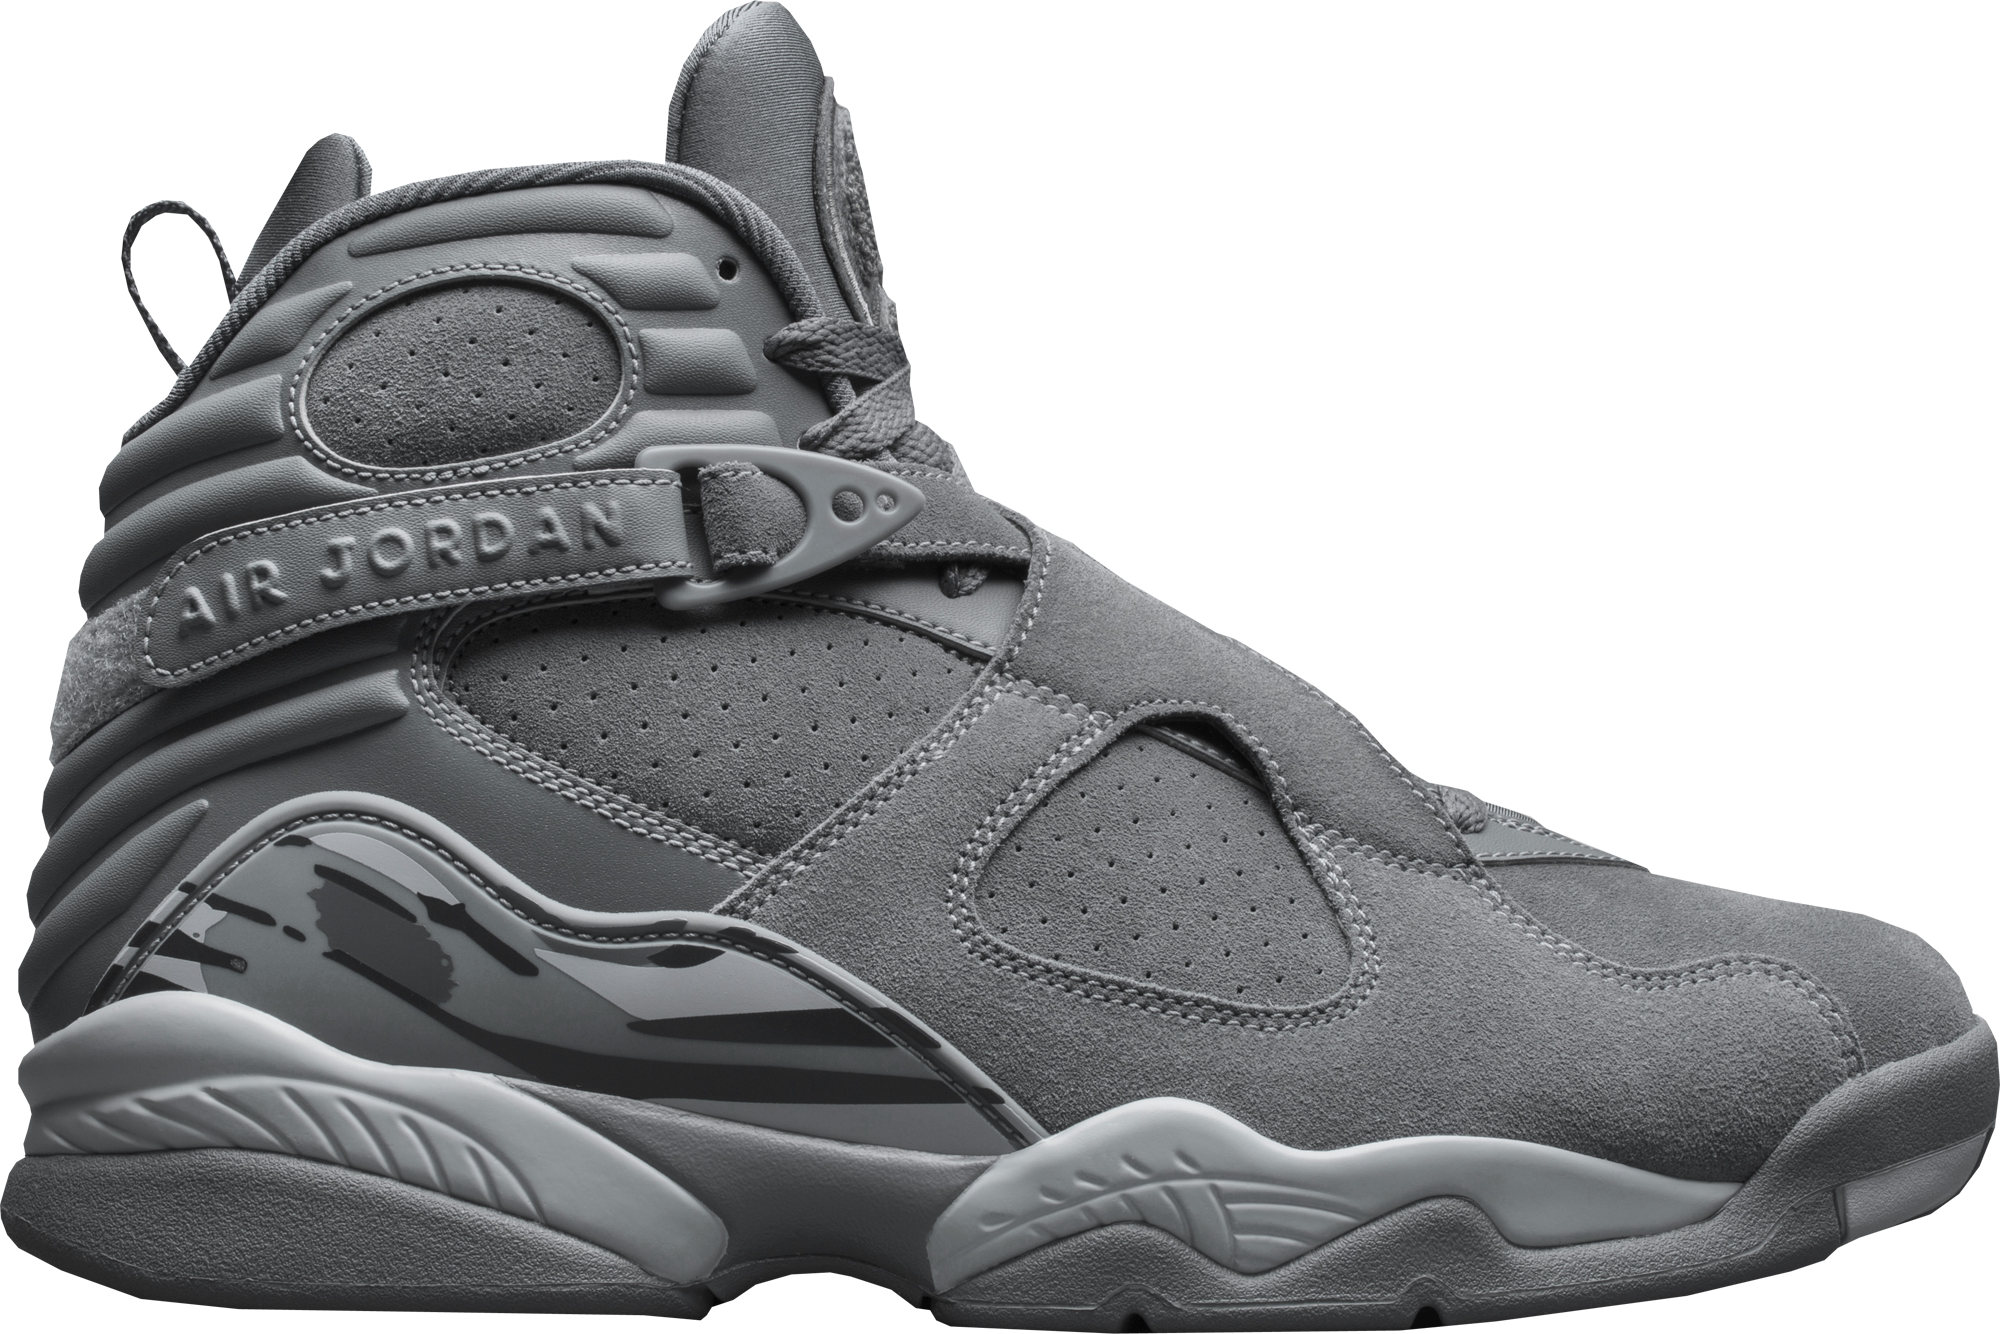 332a3c3f32a81c Air Jordan 8 Retro Cool Grey Wolf Grey 2017